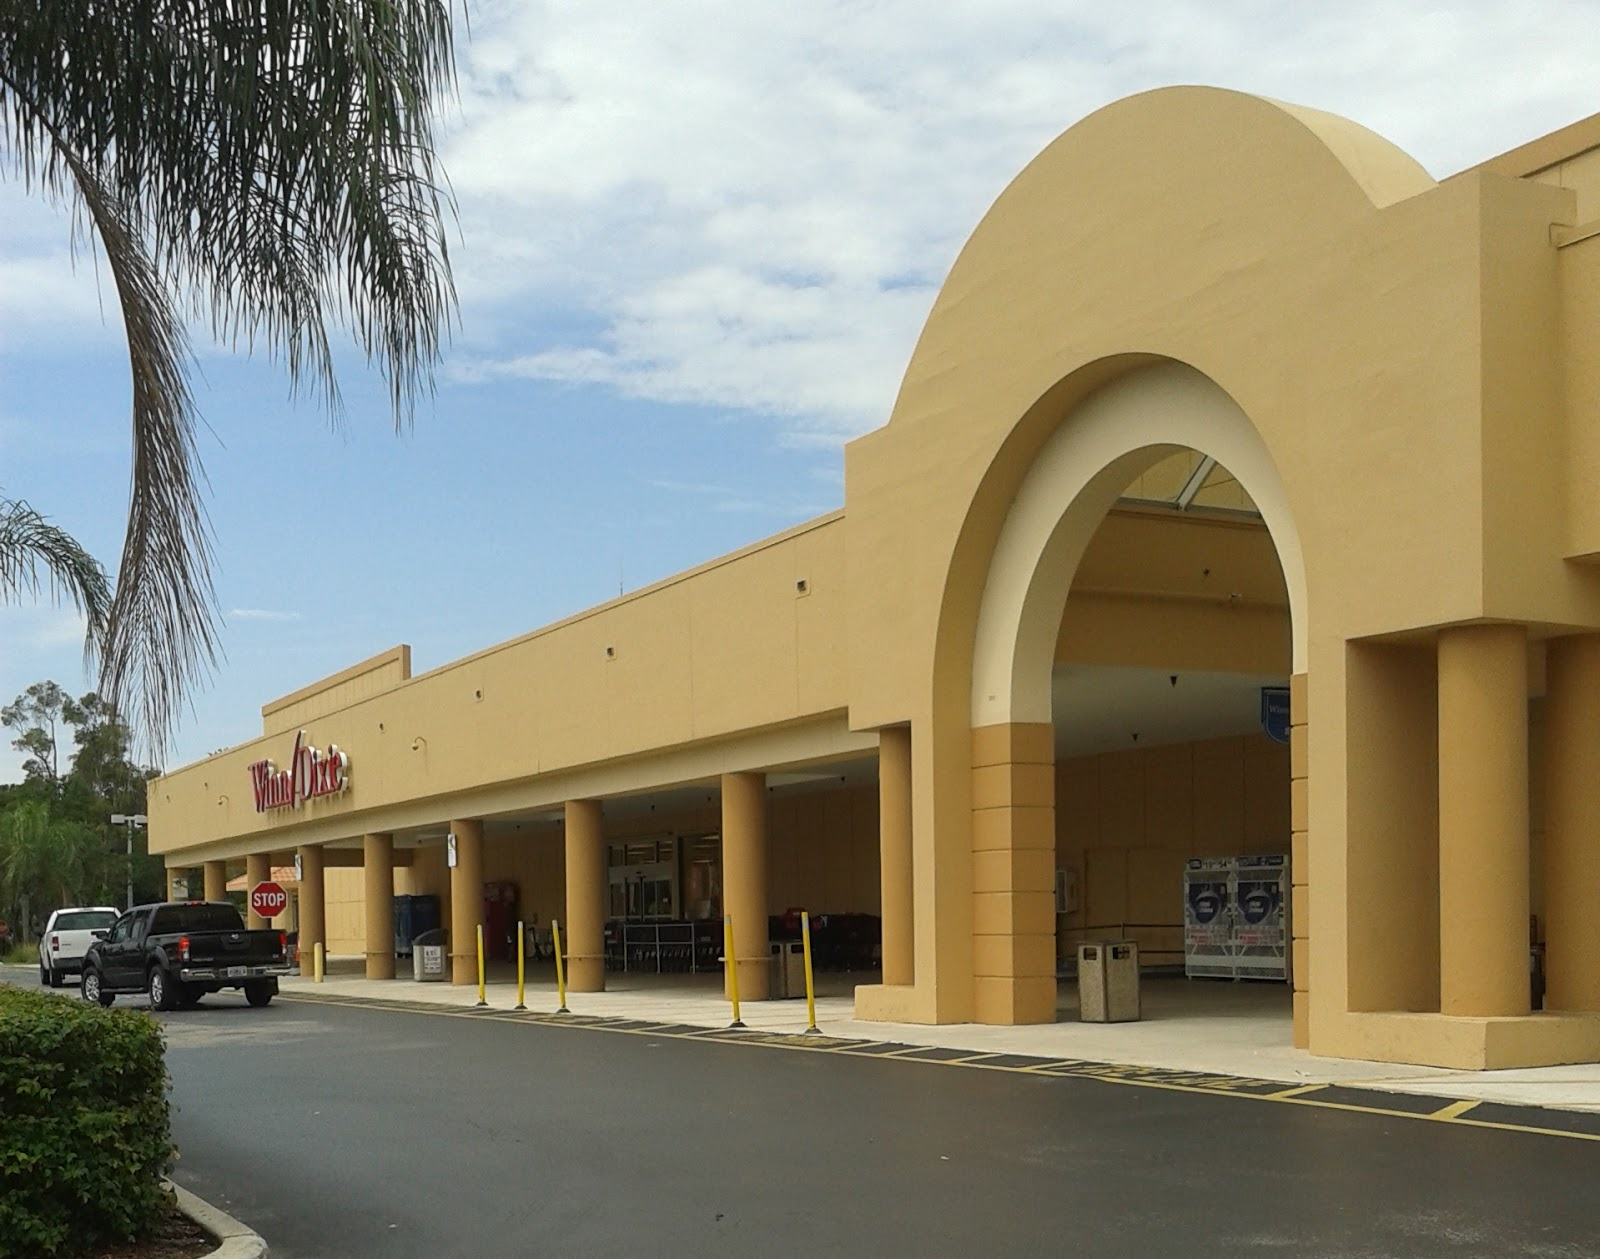 Albertsons Florida Blog: A Winn-Dixie with Something Xtra to Show